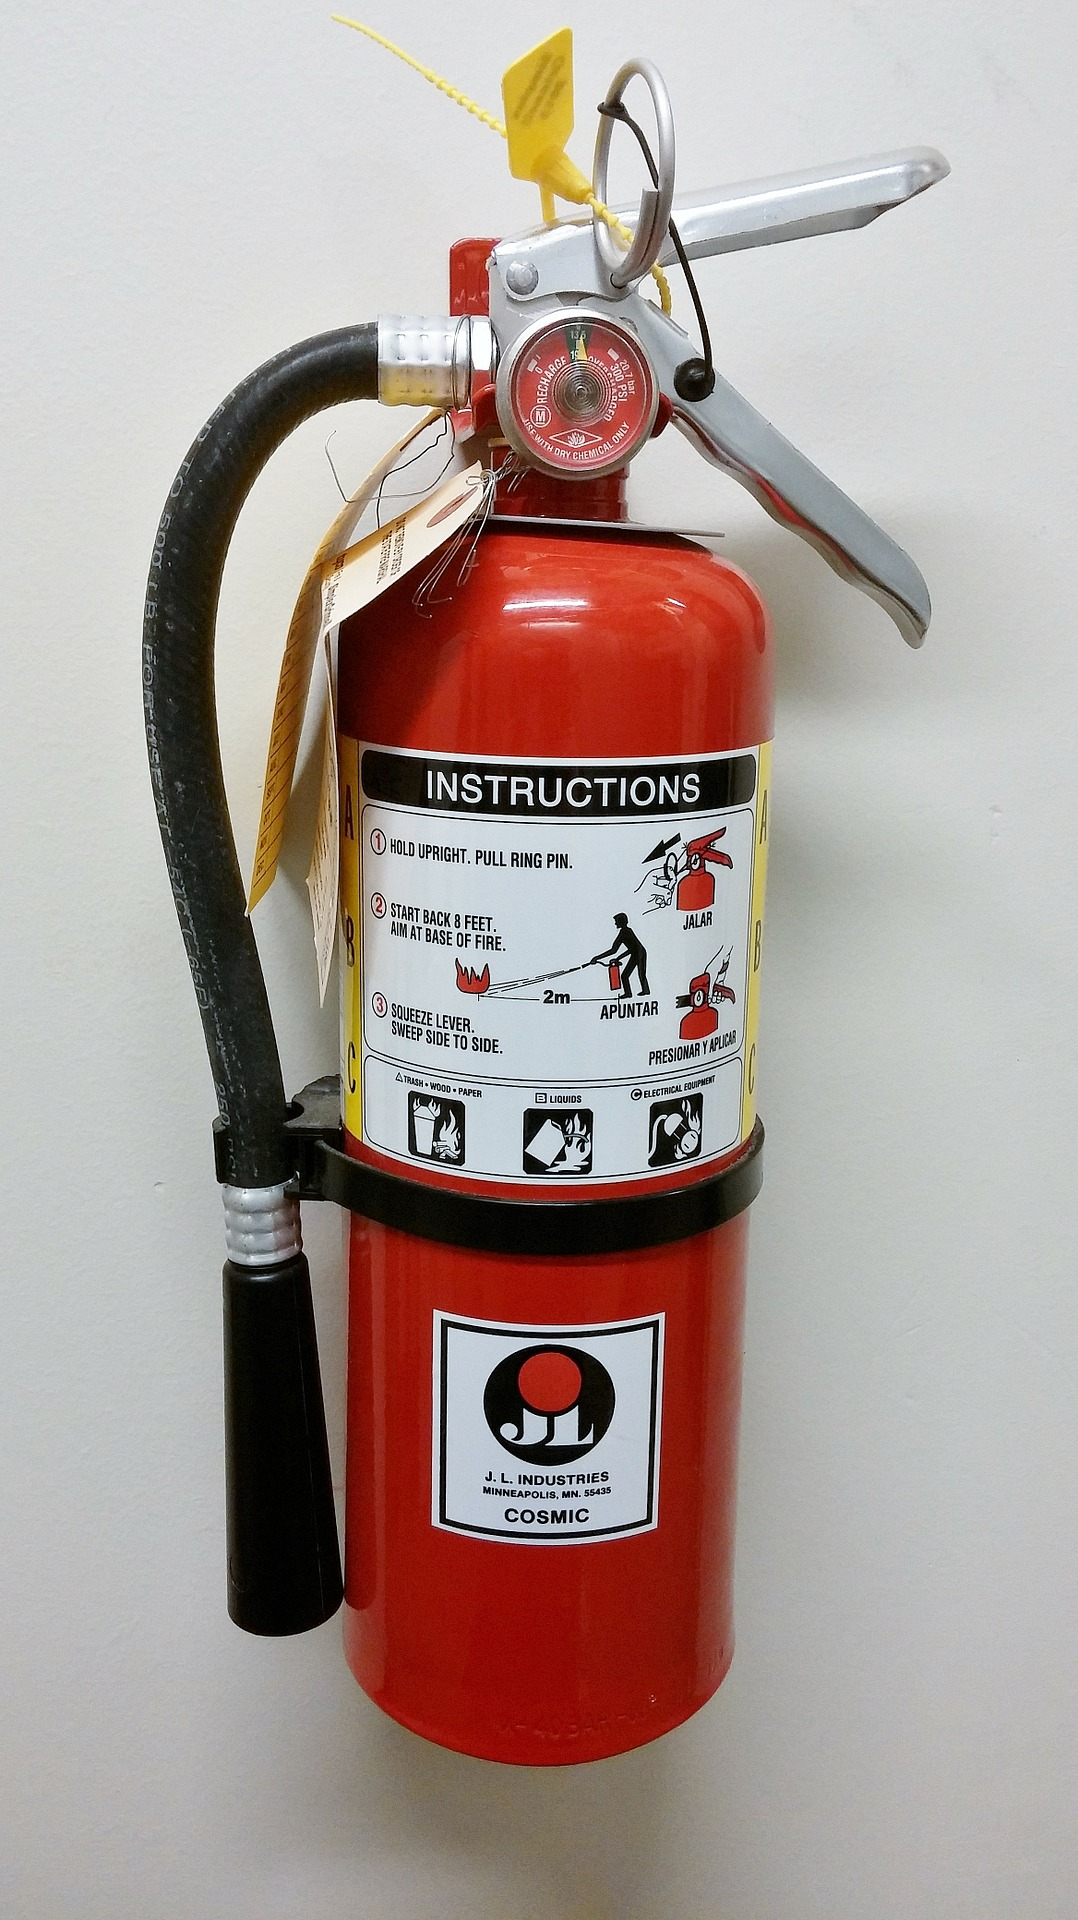 a fire extinguisher mounted on a wall